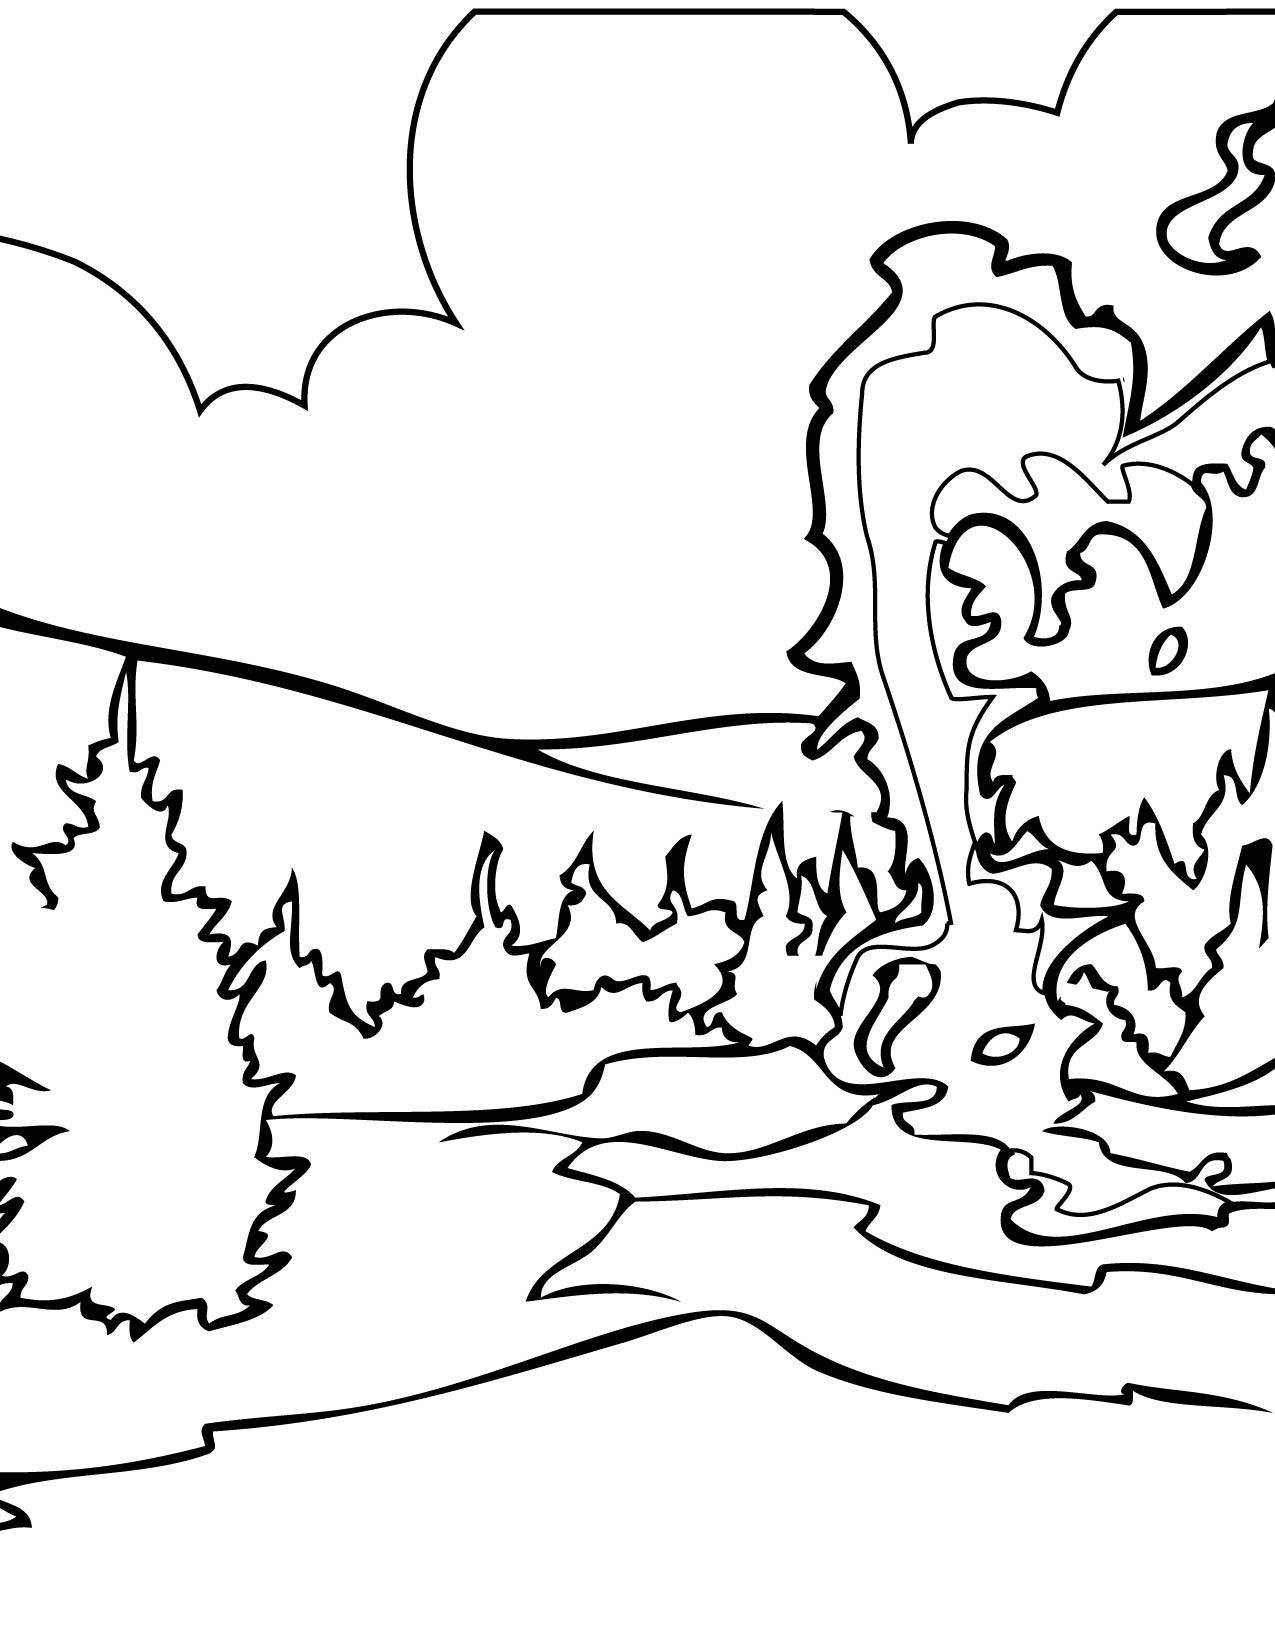 yellowstone national park coloring pages - everglades national park coloring page sketch coloring page